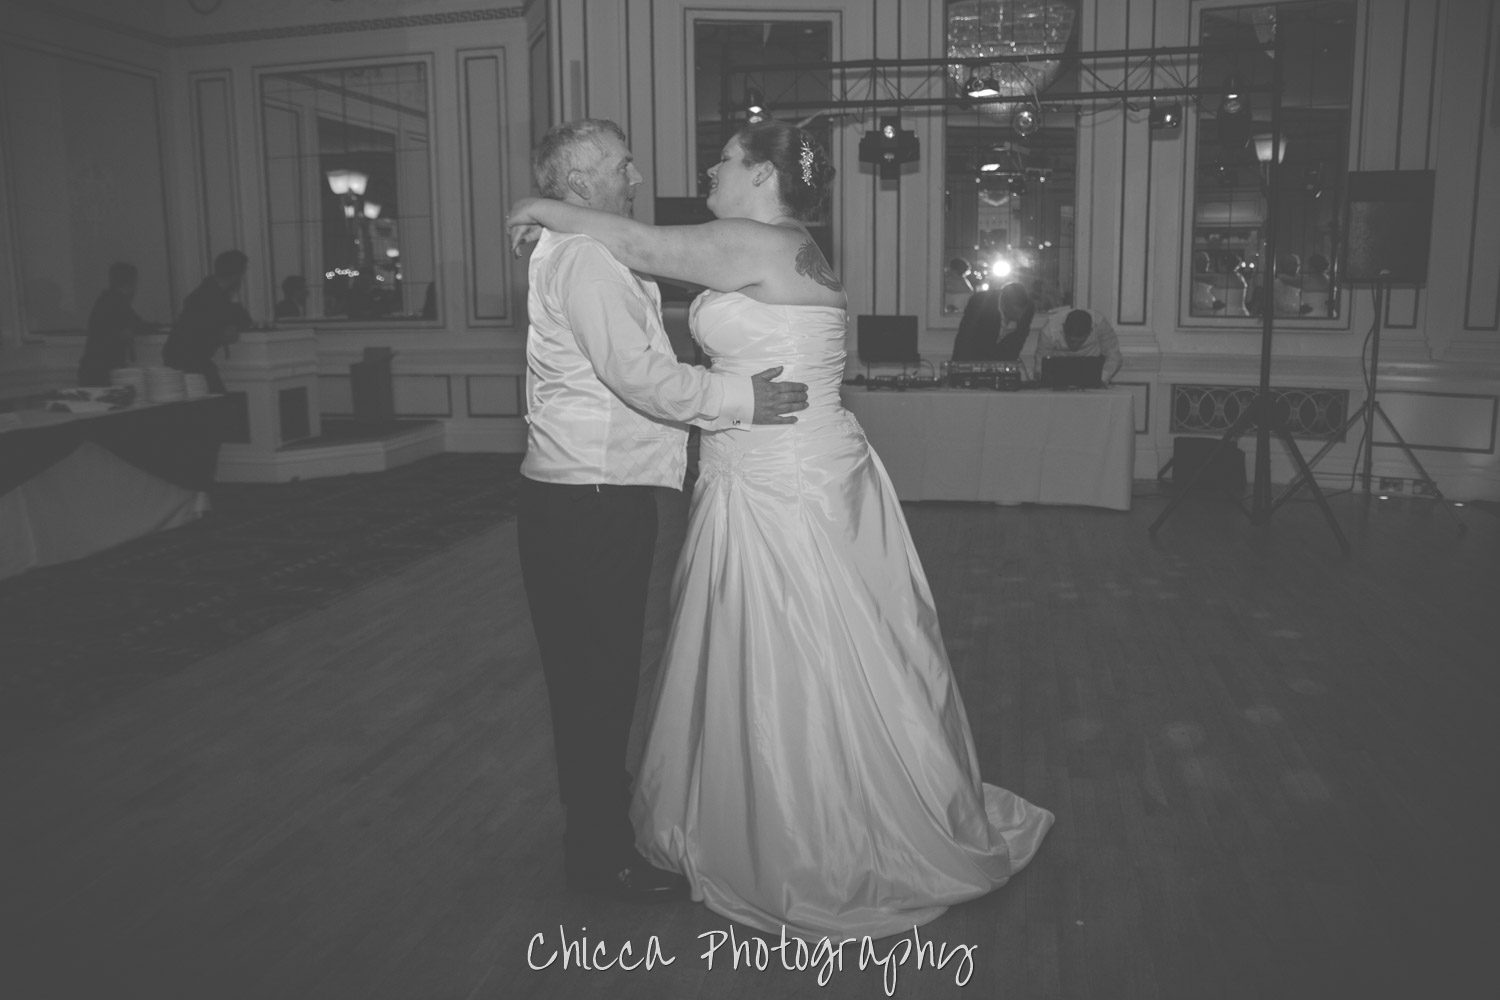 midland-hotel-bradford-wedding-photography-chicca-34.jpg